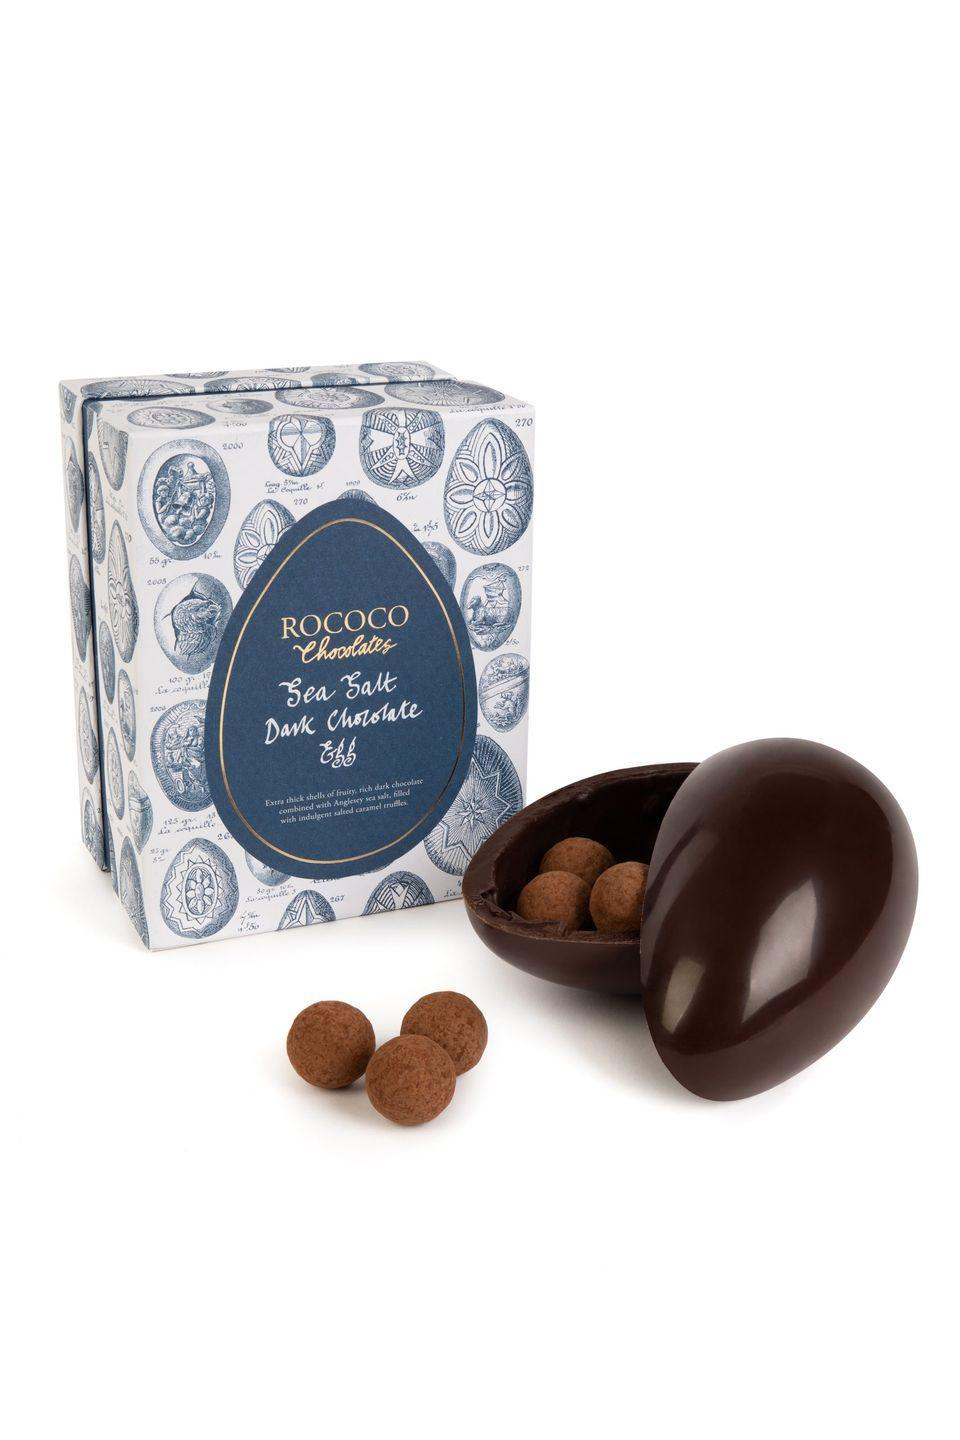 "<p>London luxury since 1983: Rococo's easter selection includes an indulgent sea salt dark chocolate egg, complete with truffles. Perfectly balanced with a touch of Anglesey sea salt, the inside hides a bag of delicious caramel truffles dusted with generous lashings of cocoa. Plus, it comes invitingly packaged in Royal-blue foil and a signature Rococo gift box. </p><p>£32.95, <a href=""https://www.rococochocolates.com/collections/easter-chocolates/"" rel=""nofollow noopener"" target=""_blank"" data-ylk=""slk:Rococo Chocolates"" class=""link rapid-noclick-resp"">Rococo Chocolates</a>.</p><p><a class=""link rapid-noclick-resp"" href=""https://www.rococochocolates.com/collections/easter-chocolates/"" rel=""nofollow noopener"" target=""_blank"" data-ylk=""slk:SHOP NOW"">SHOP NOW</a><br></p>"